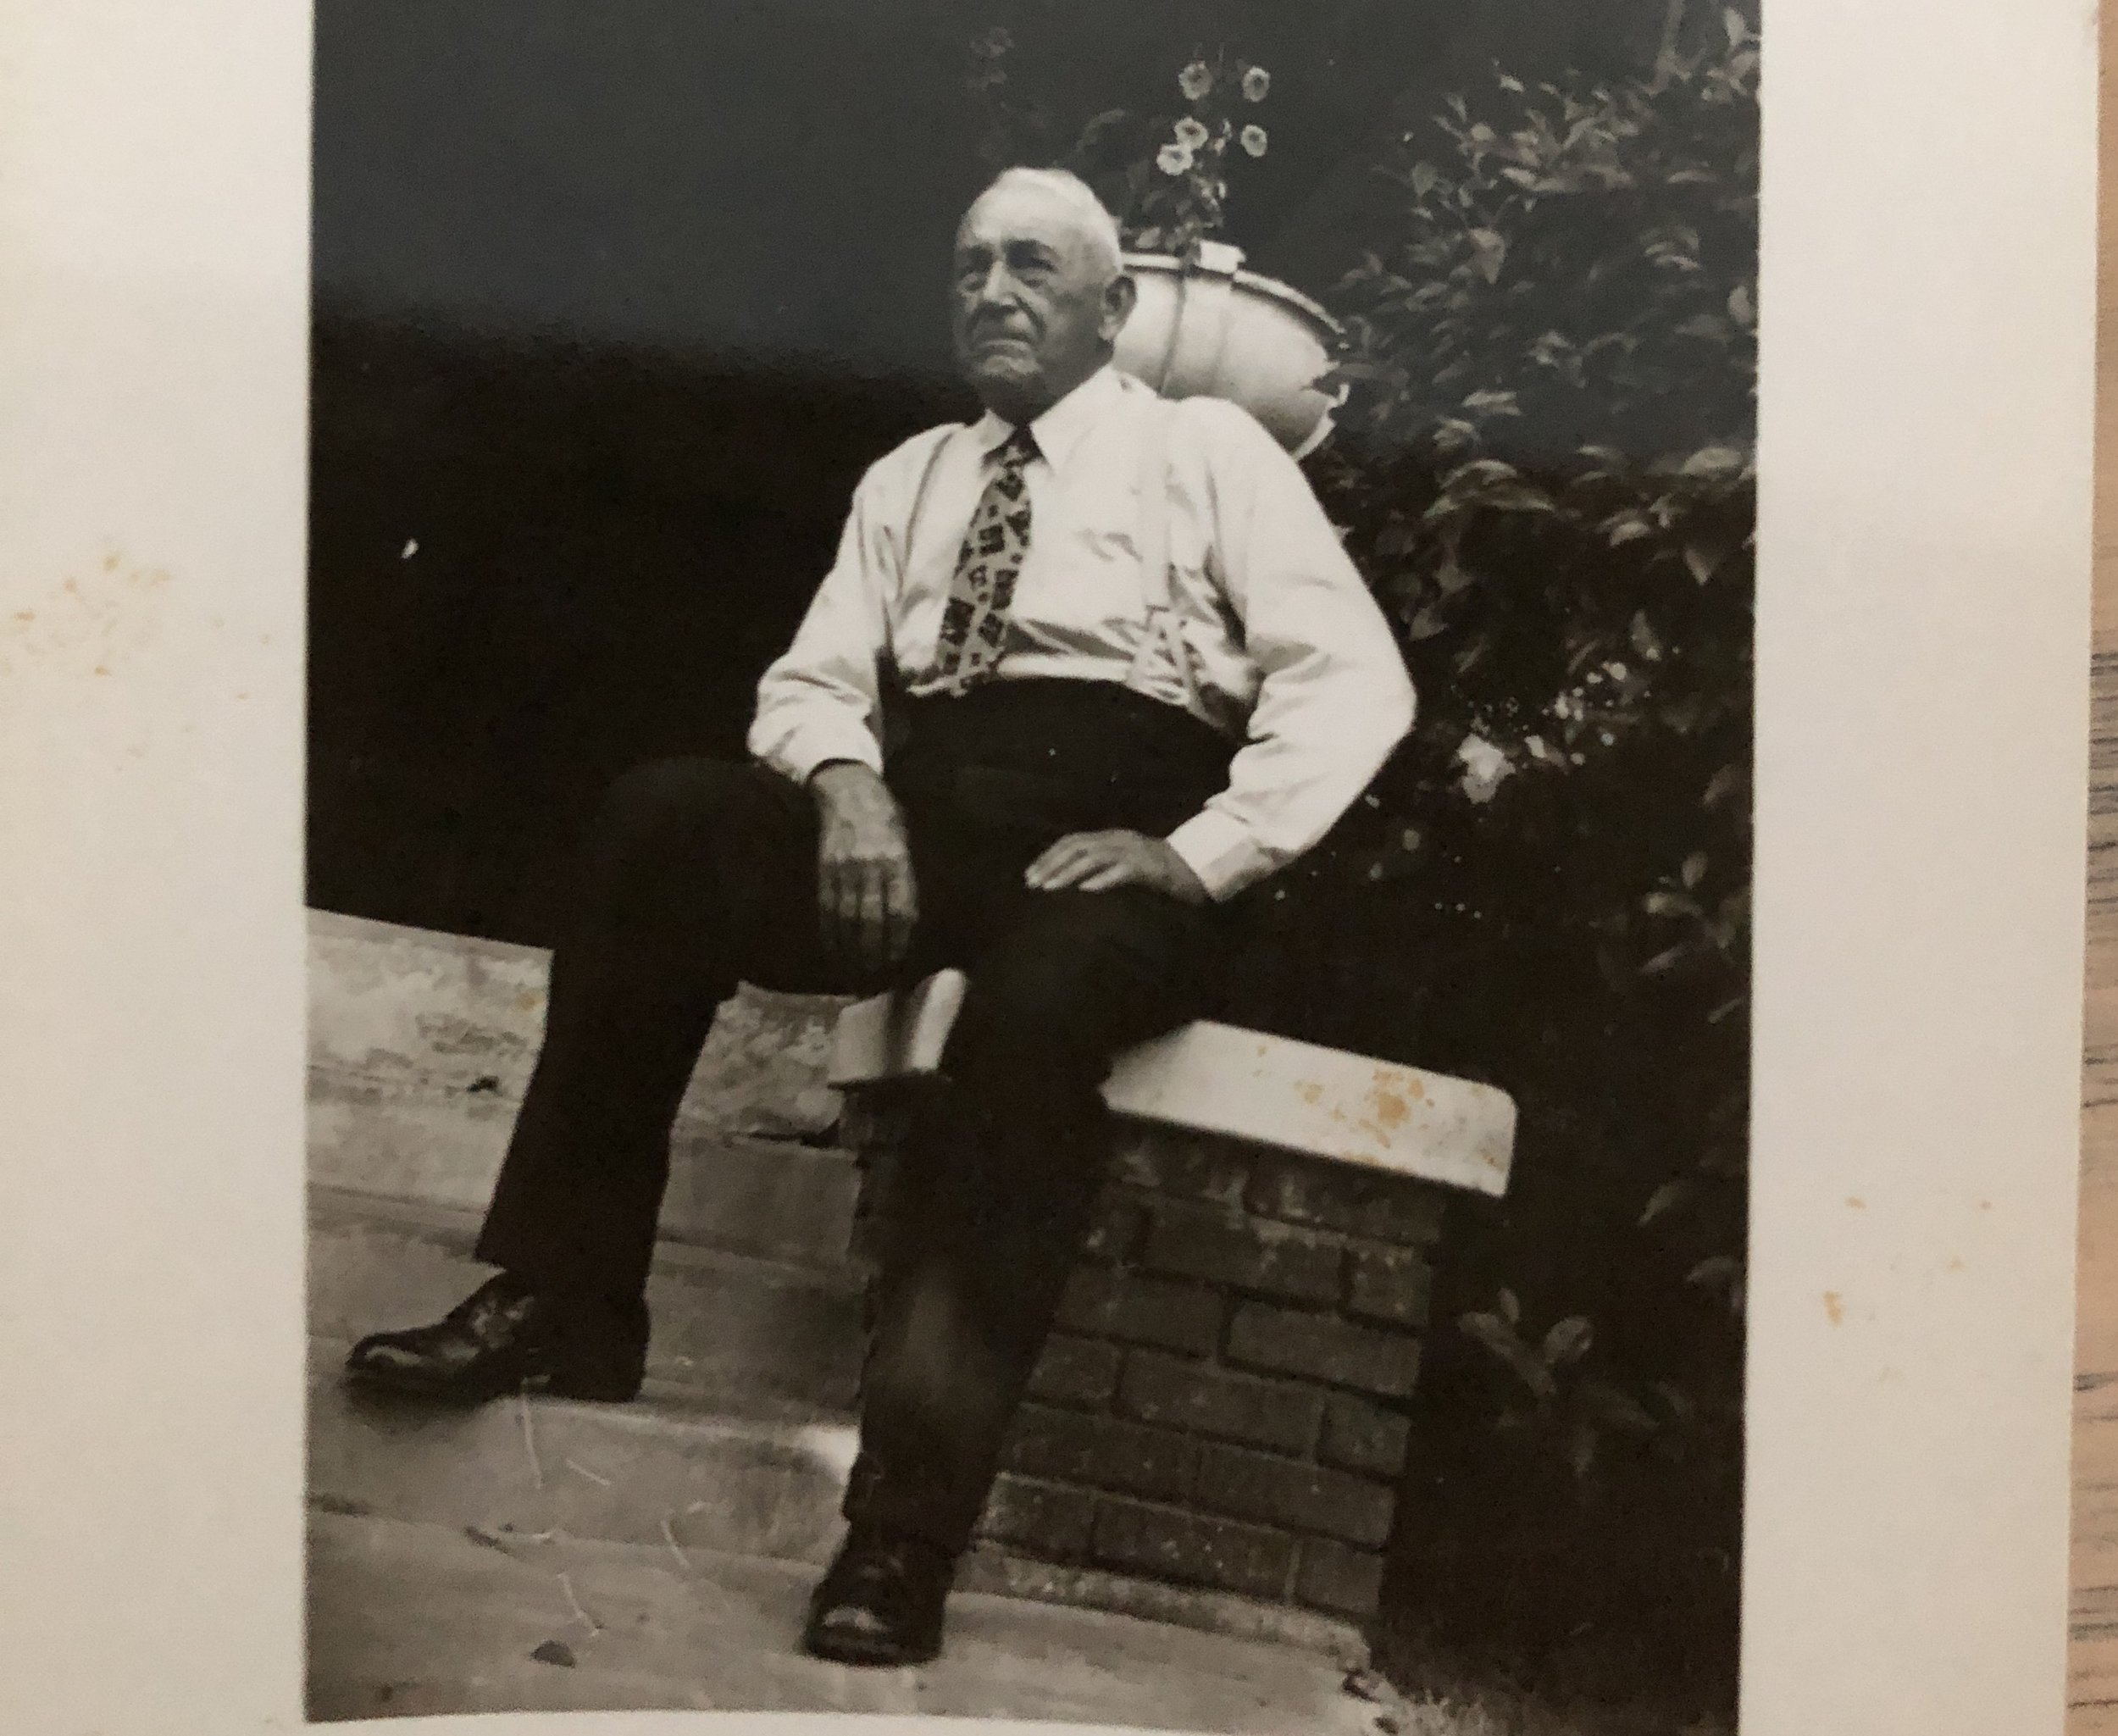 My Great Grandpa,Michael Healey - Photo provided by my Aunt Mary Ann Conelly